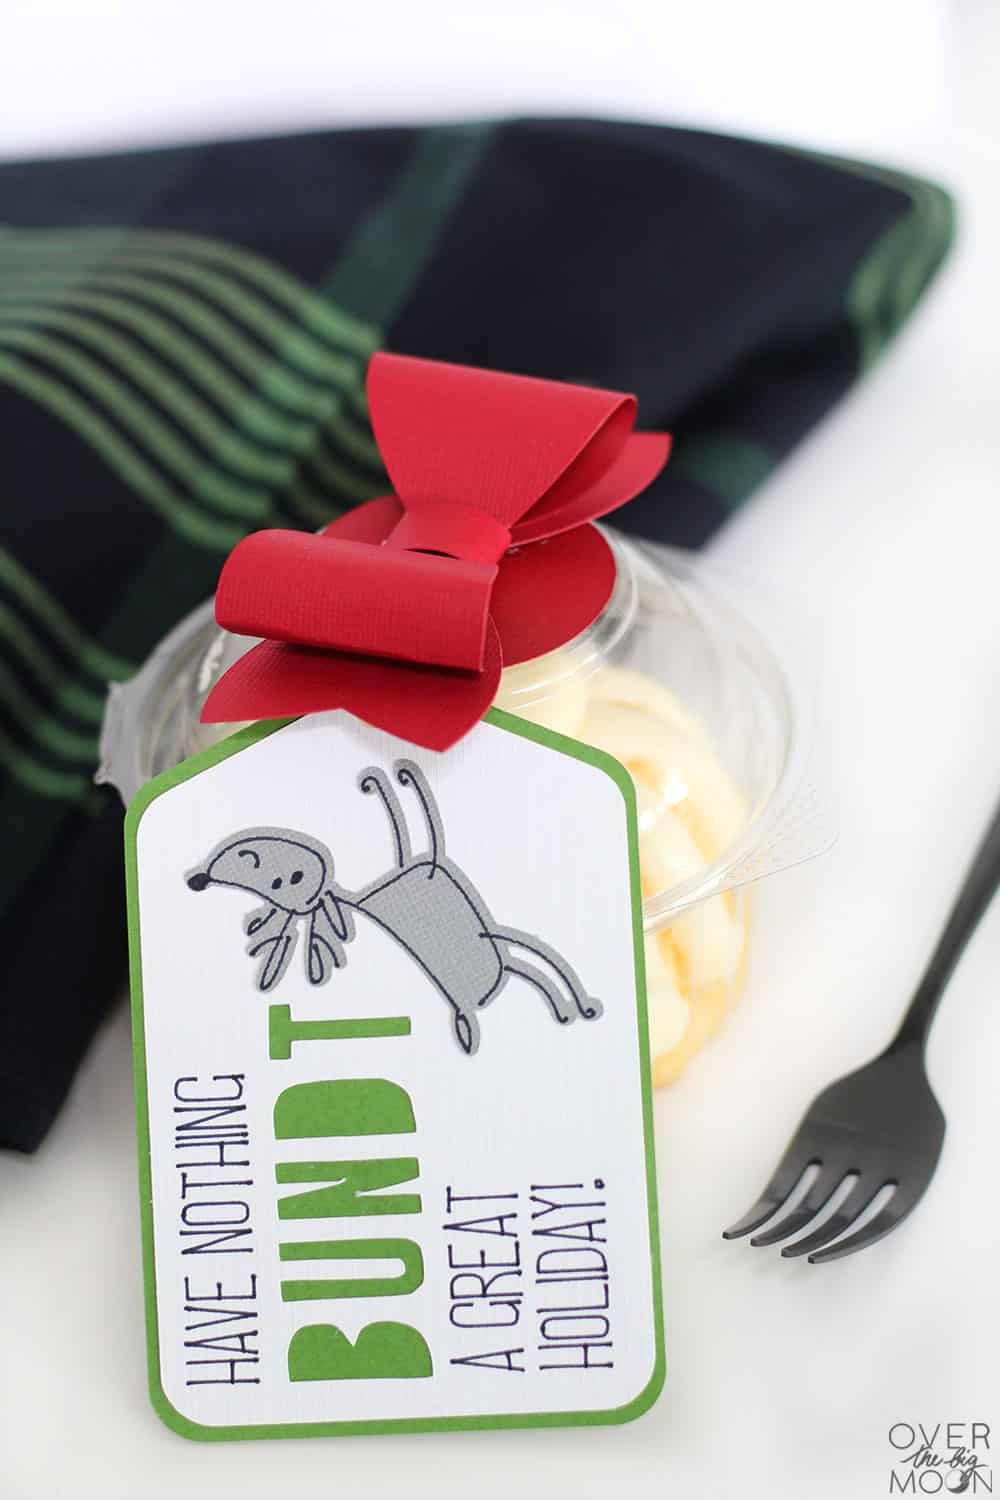 Need a quick gift idea for your friends? Put together this simple Bundt Cake gift idea! It's super cute and easy! From www.overthebigmoon.com